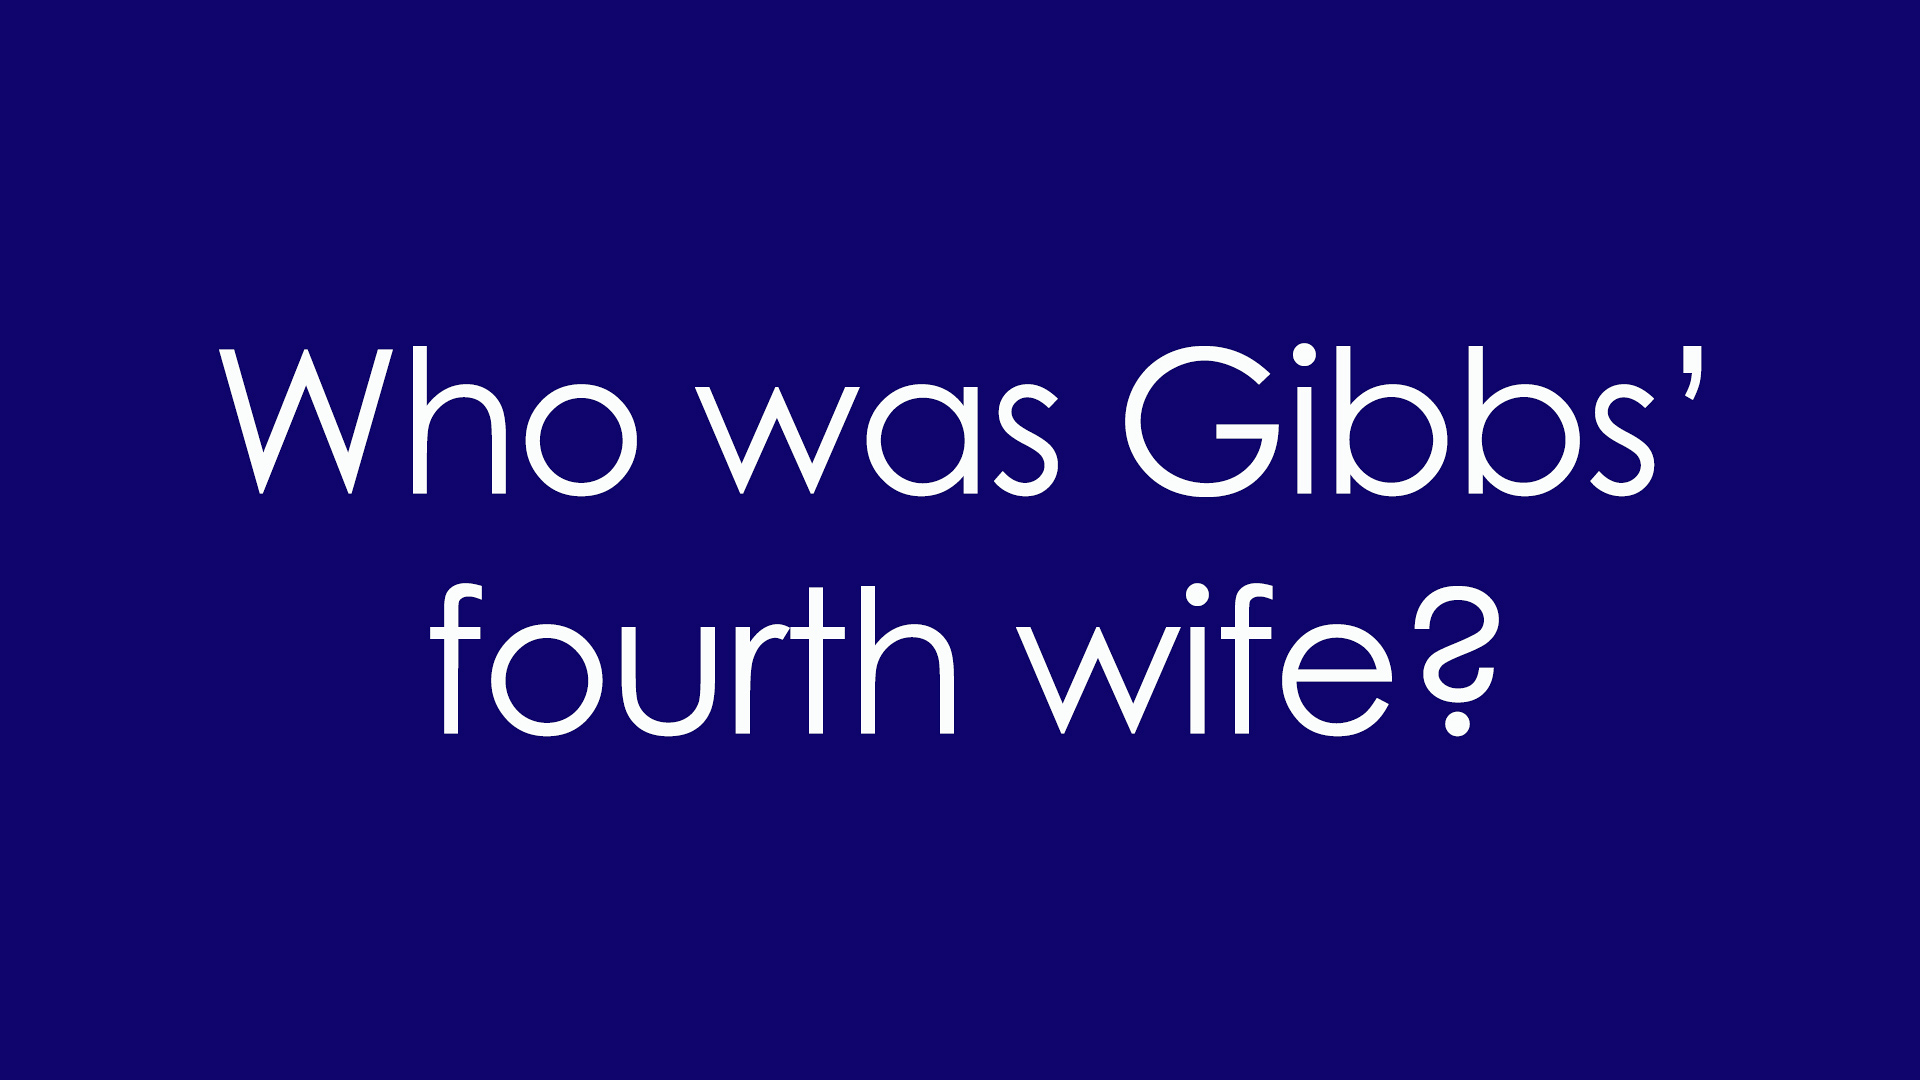 8. Who was Gibbs' fourth wife?